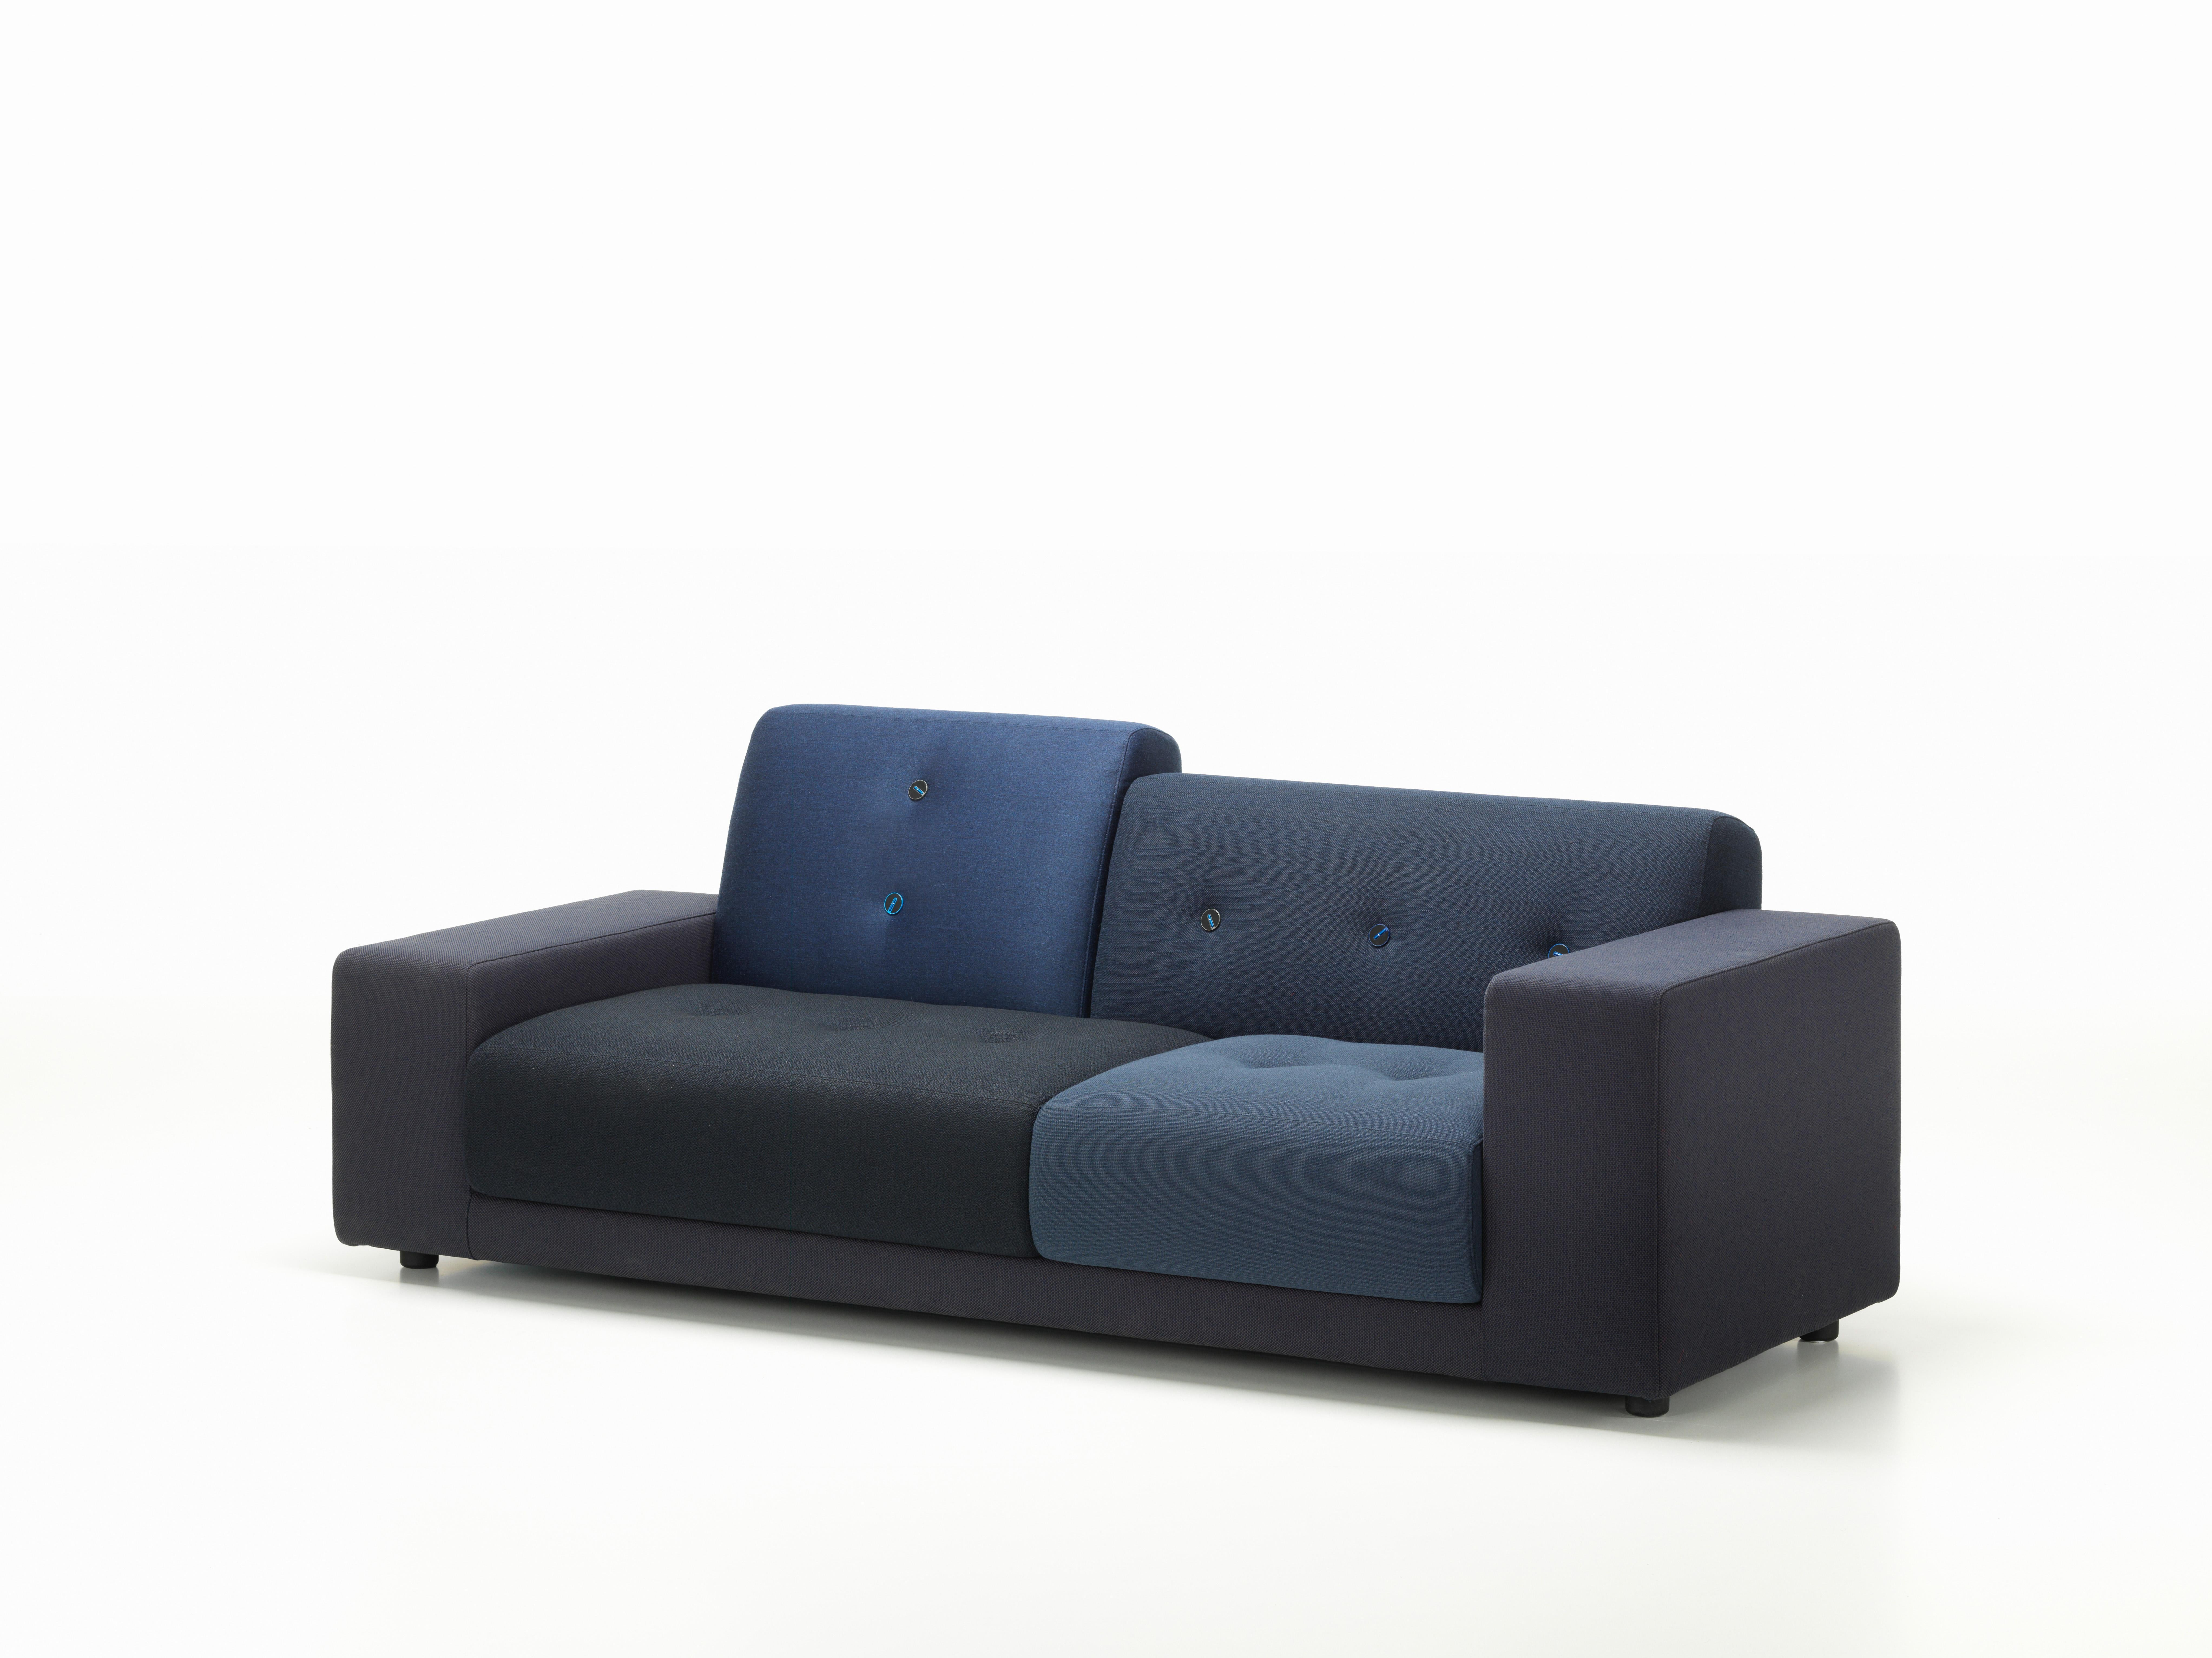 Vitra Polder Compact Sofa In Night Blue Shades By A Jongerius For At 1stdibs